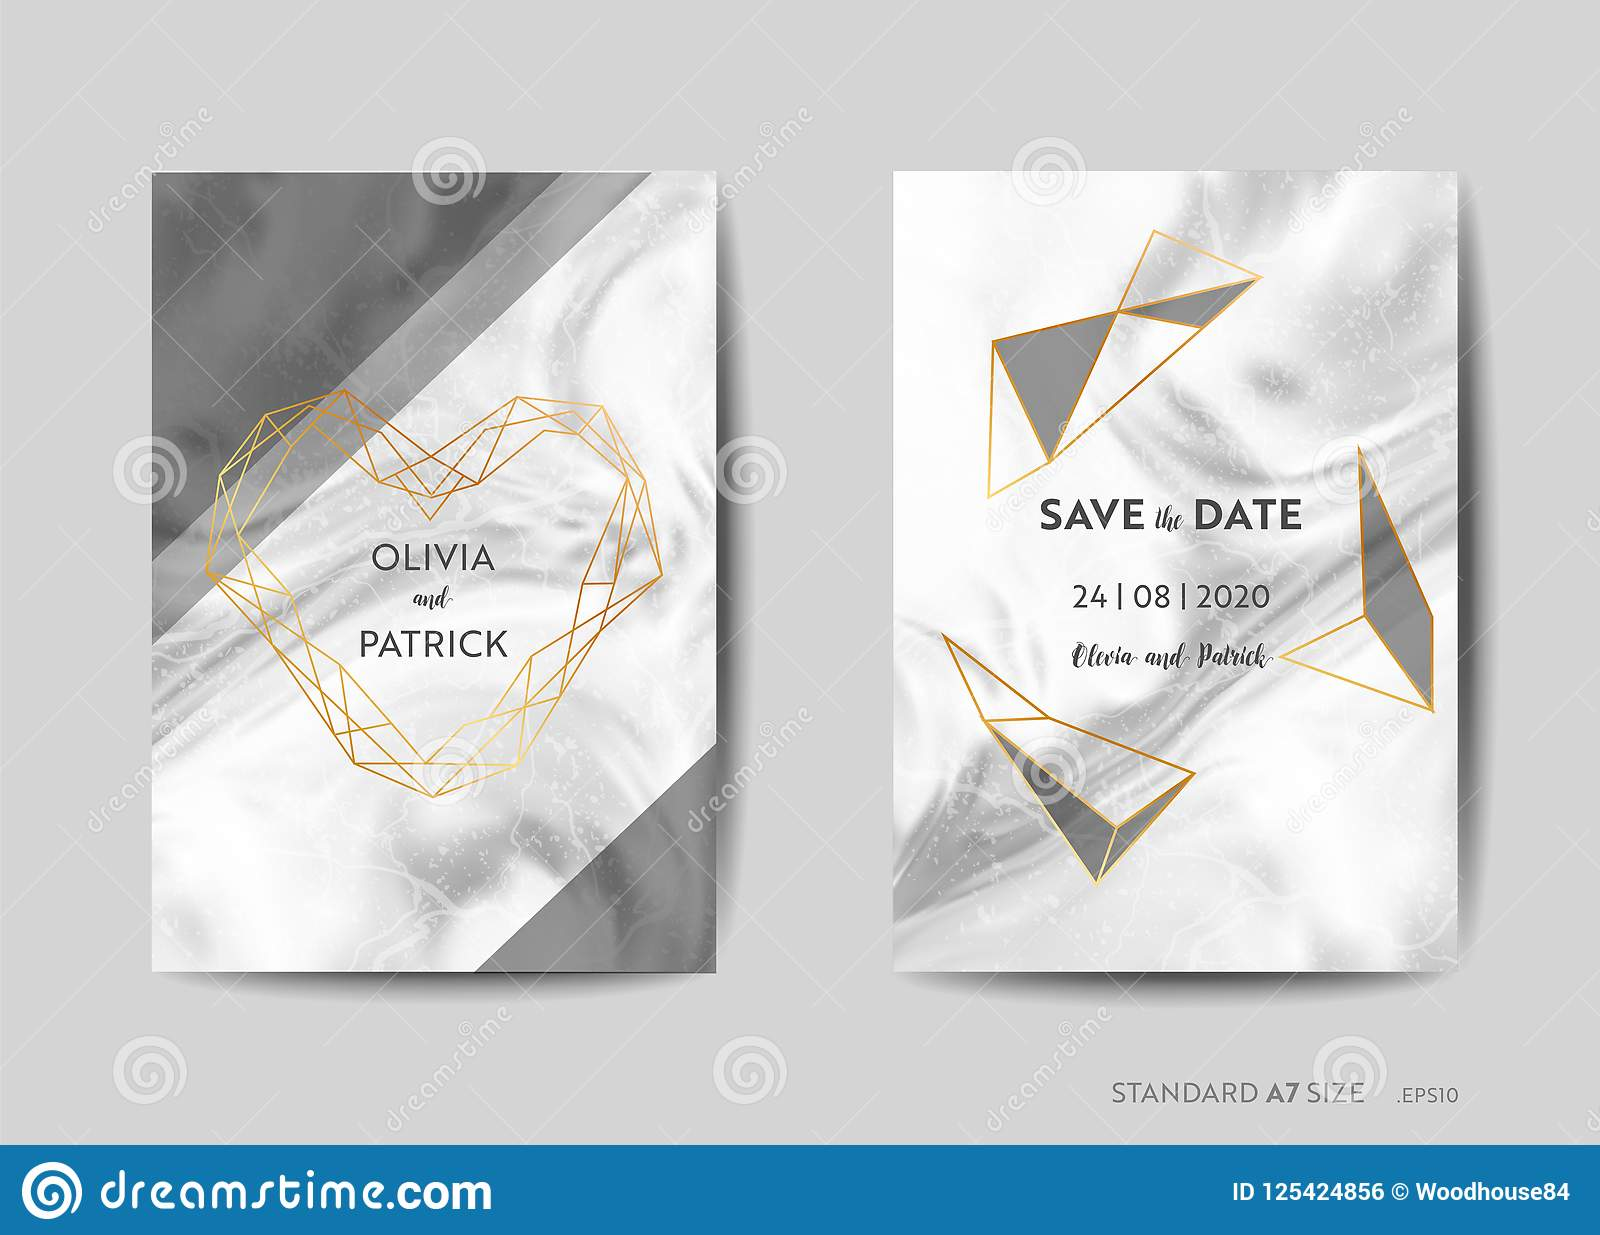 49a5ae3eaaac9 Wedding Invitation Cards, Save The Date With Trendy Marble Texture ...